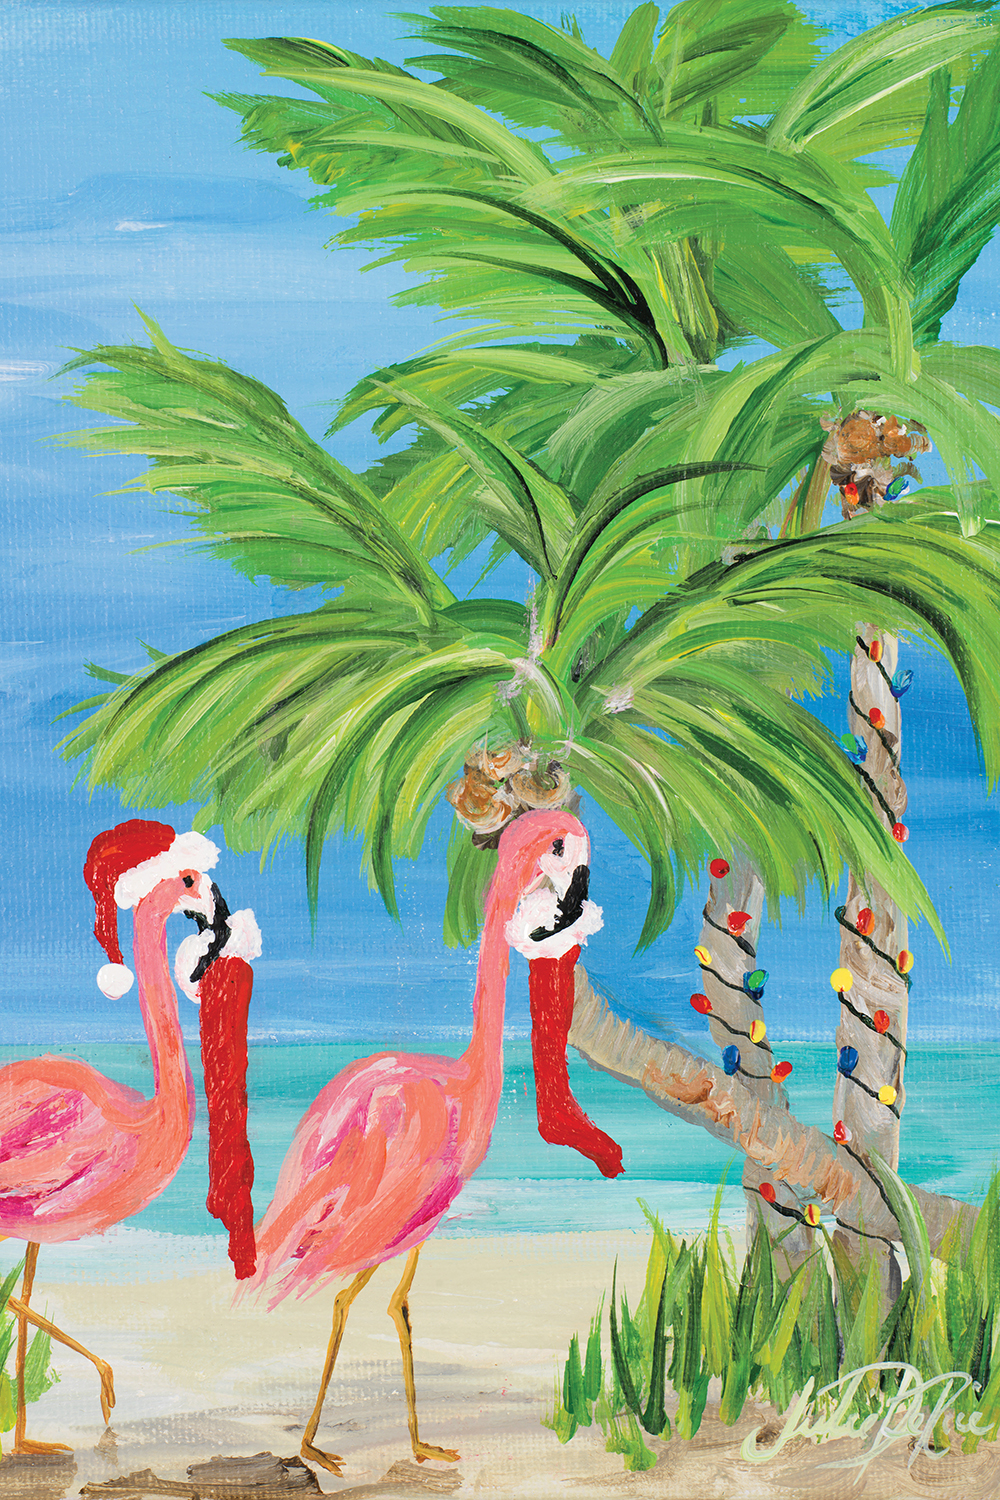 Two pink flamingos wearing Santa hats and carrying stockings by a palm tree with Christmas lights wrapped around it on a beach